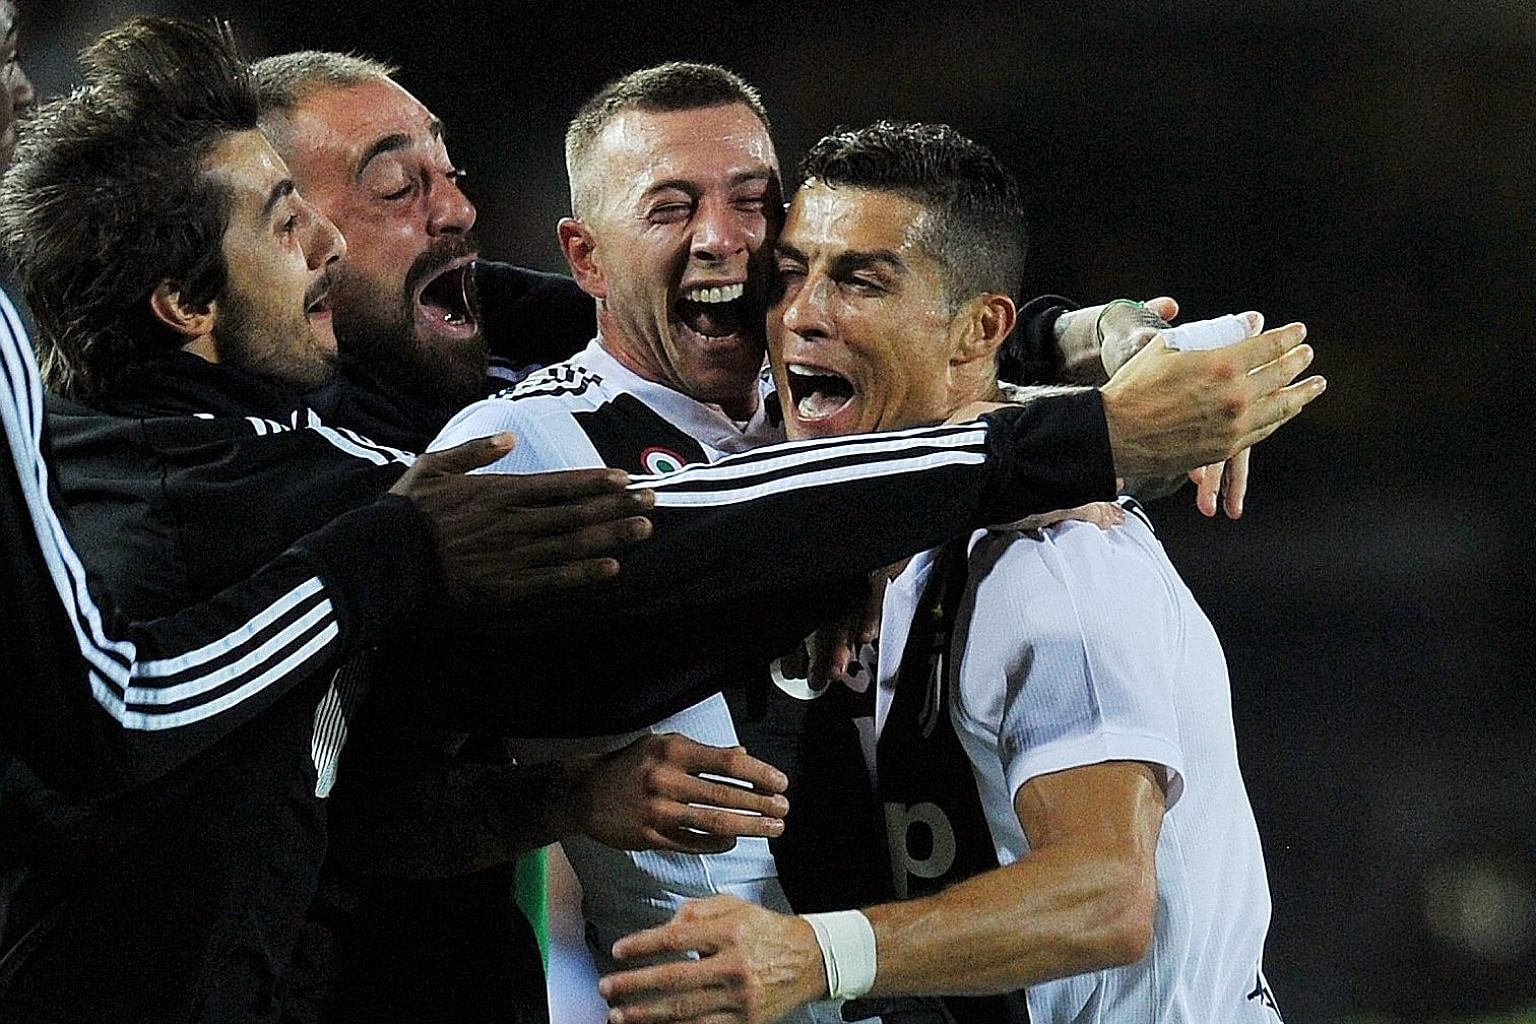 Cristiano Ronaldo celebrating what proved to be the winner against Empoli with his teammates. The Portuguese forward's long-range strike gave the Serie A leaders a 2-1 victory.